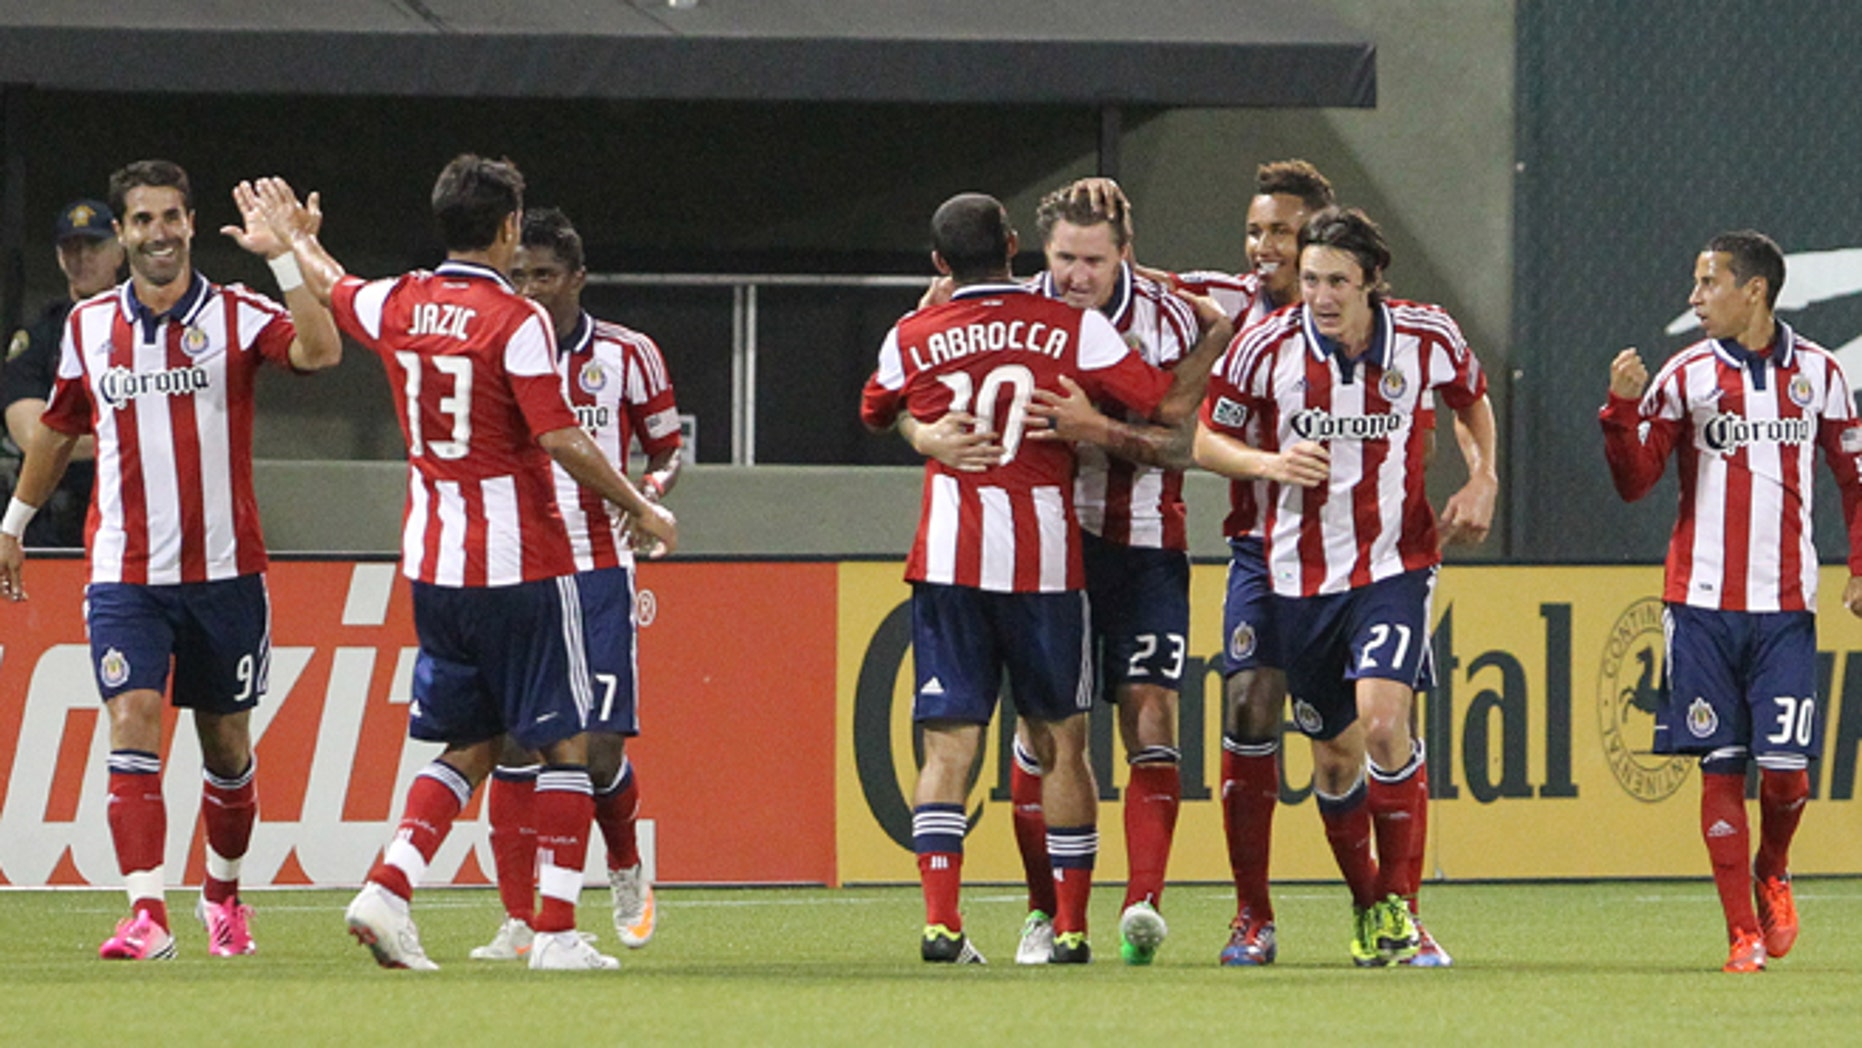 FILE - This July 28, 2012, file photo shows Chivas USA's Danny Califf (23) embraces teammate Nick LaBrocca (10) after he scores in the second half during an MLS soccer game with the Portland Timbers in Portland, Ore. Chivas USA ceased operations on Monday, Oct. 27, 2014, after 10 troubled and unsuccessful years in Major League Soccer, with the league planning a new franchise for Los Angeles that will begin play in 2017 with new ownership and a new soccer-specific stadium. (AP Photo/Rick Bowmer, File)